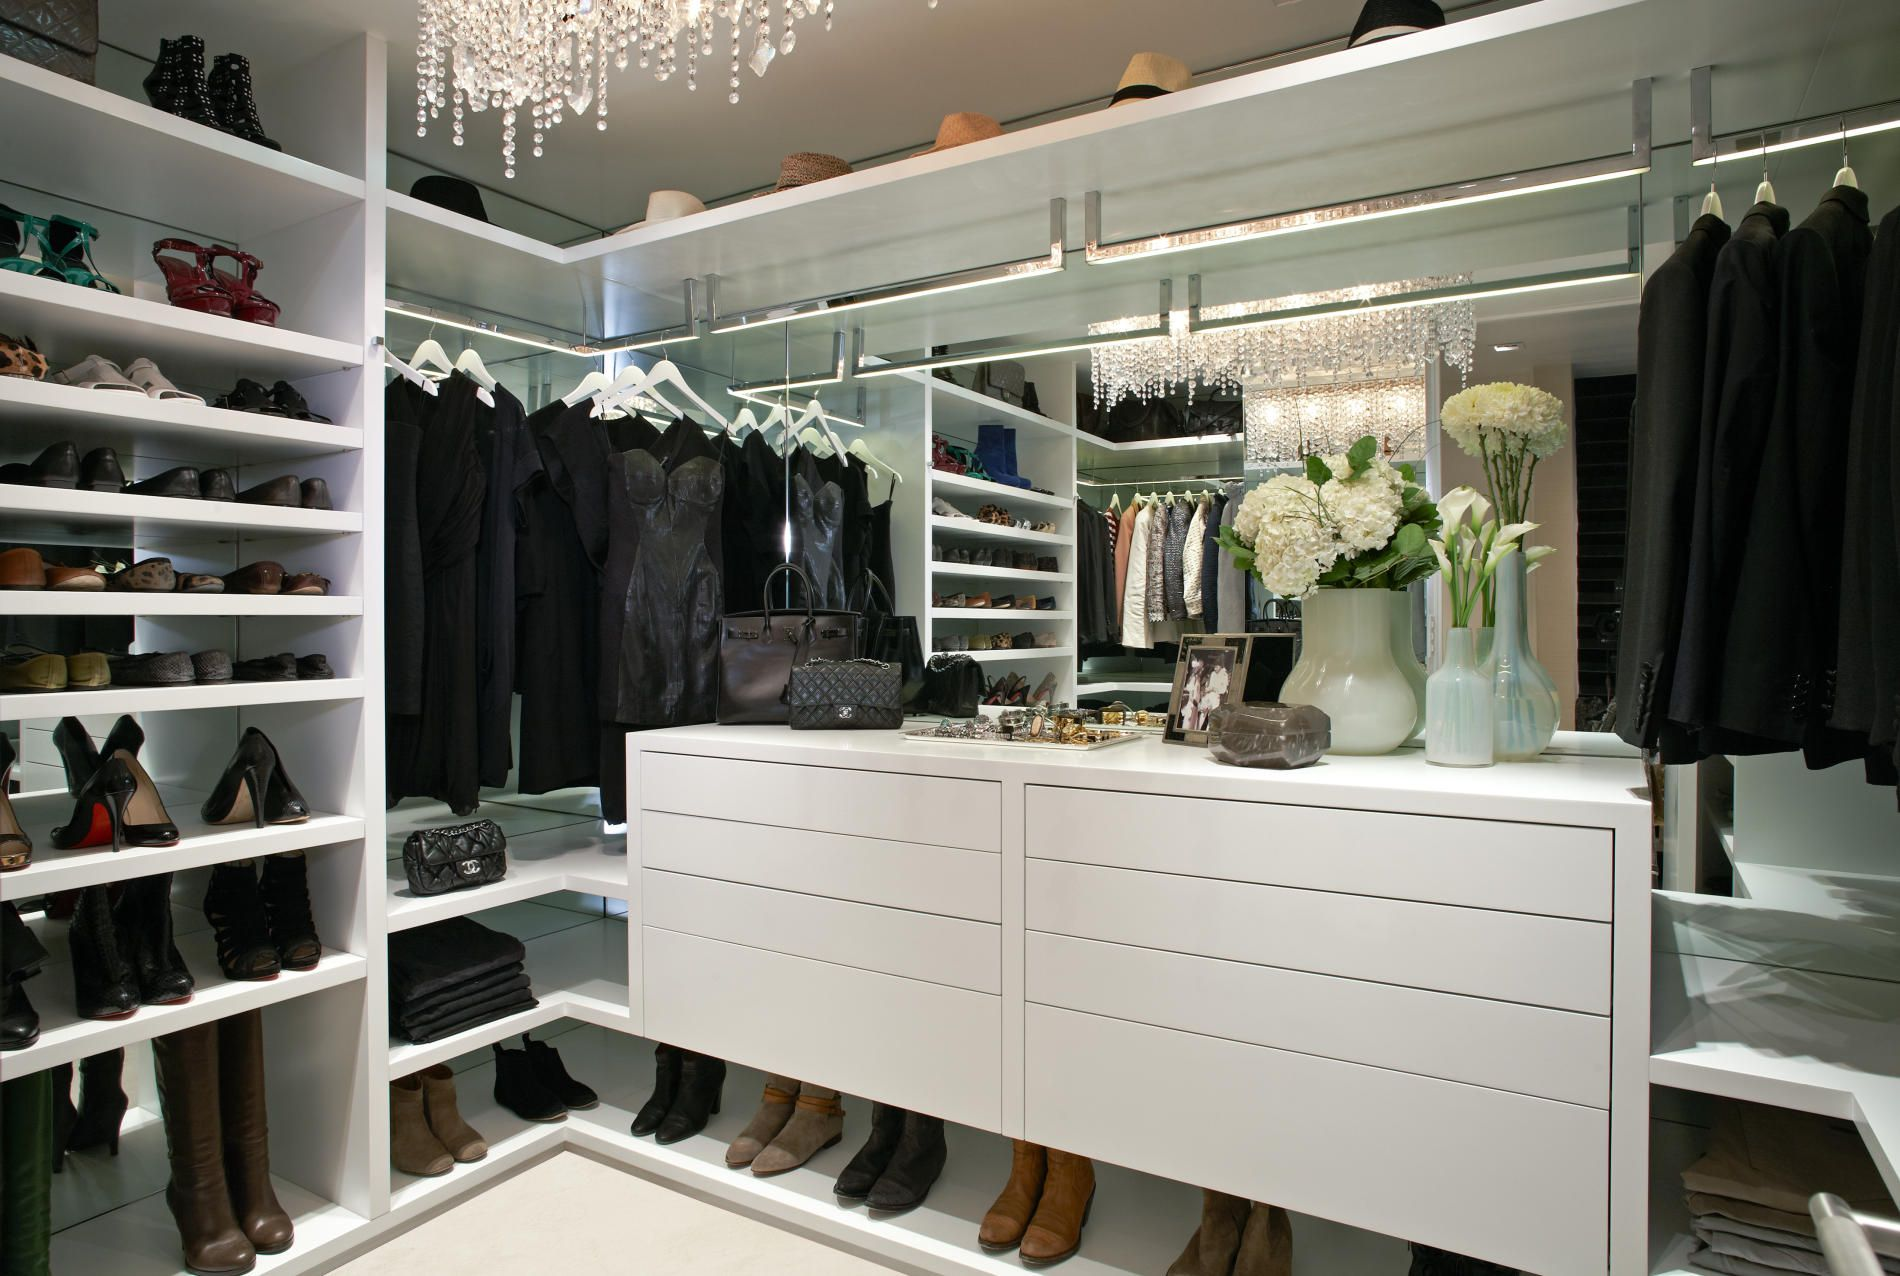 zc design award florida awarded is closets jl by closet best south cabinetry asid logo